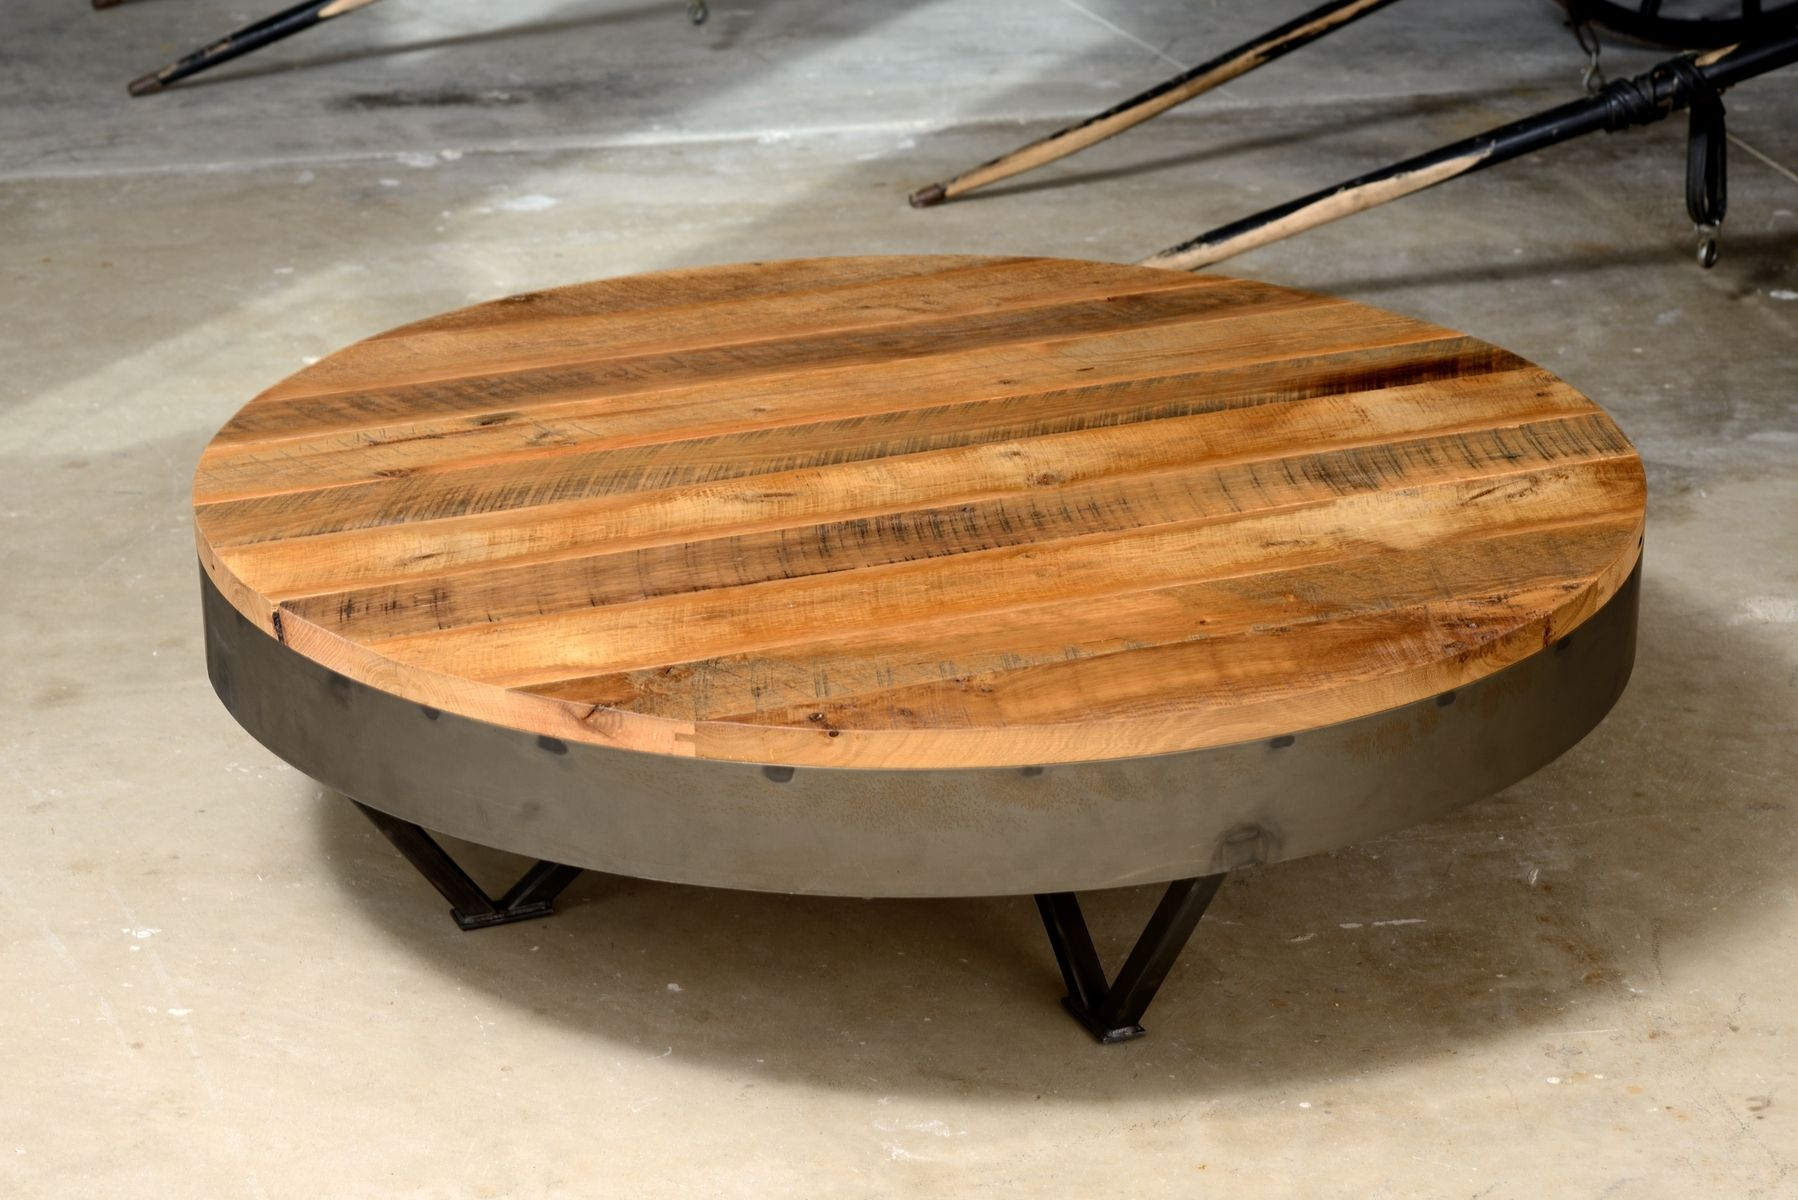 Custom Reclaimed Barn Wood Coffee Table 36 Round 48 Round By Ron Corl Design Ltd